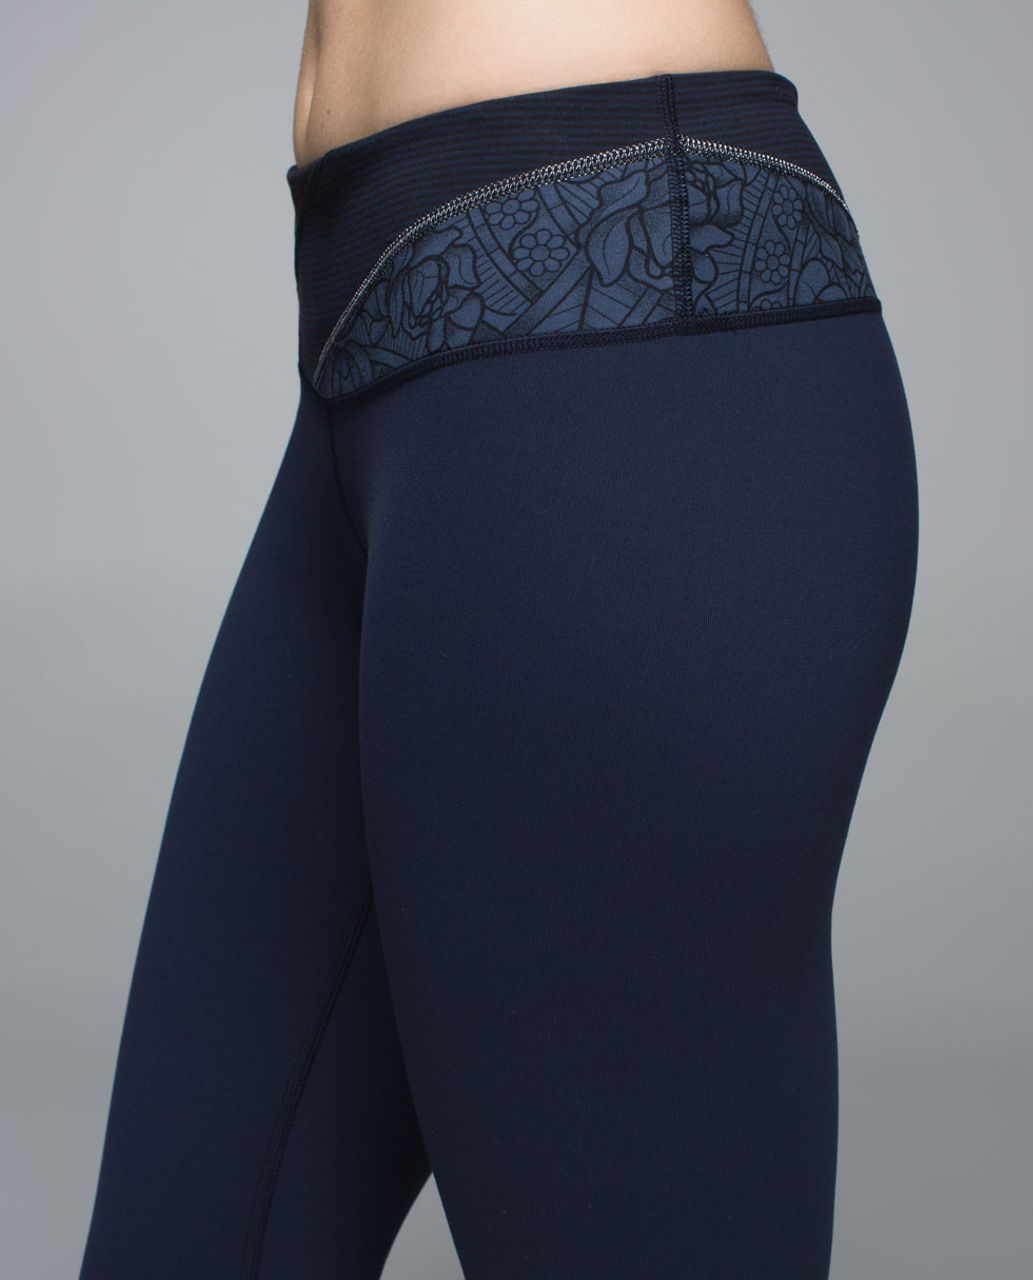 Lululemon Wunder Under Pant *Full-On Luon - Inkwell / Wi14 Quilt 1